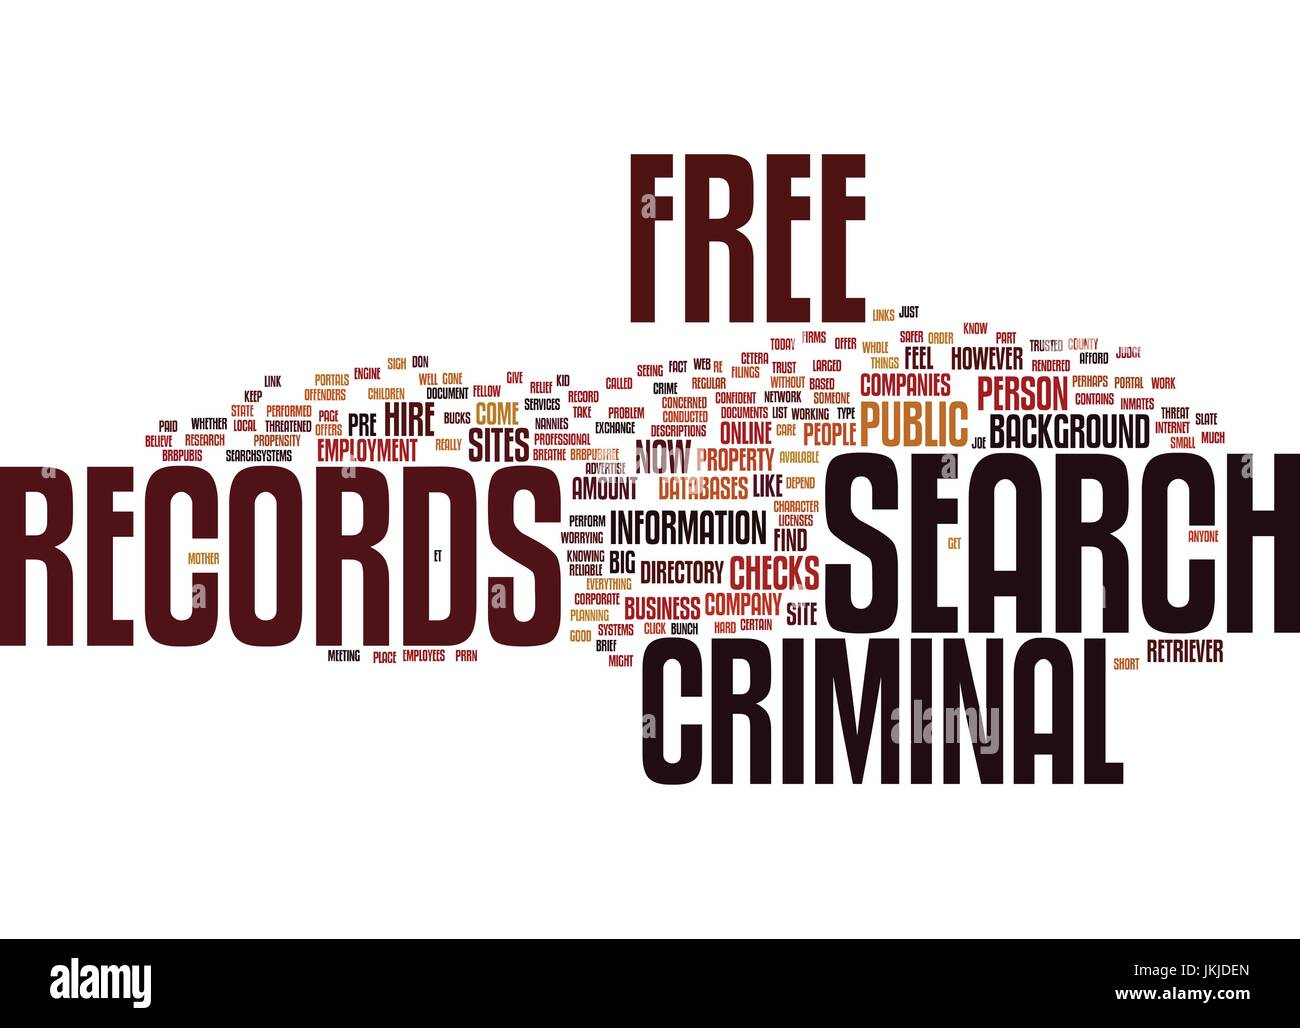 Free Criminal Record Check >> Free Criminal Records Search Text Background Word Cloud Concept